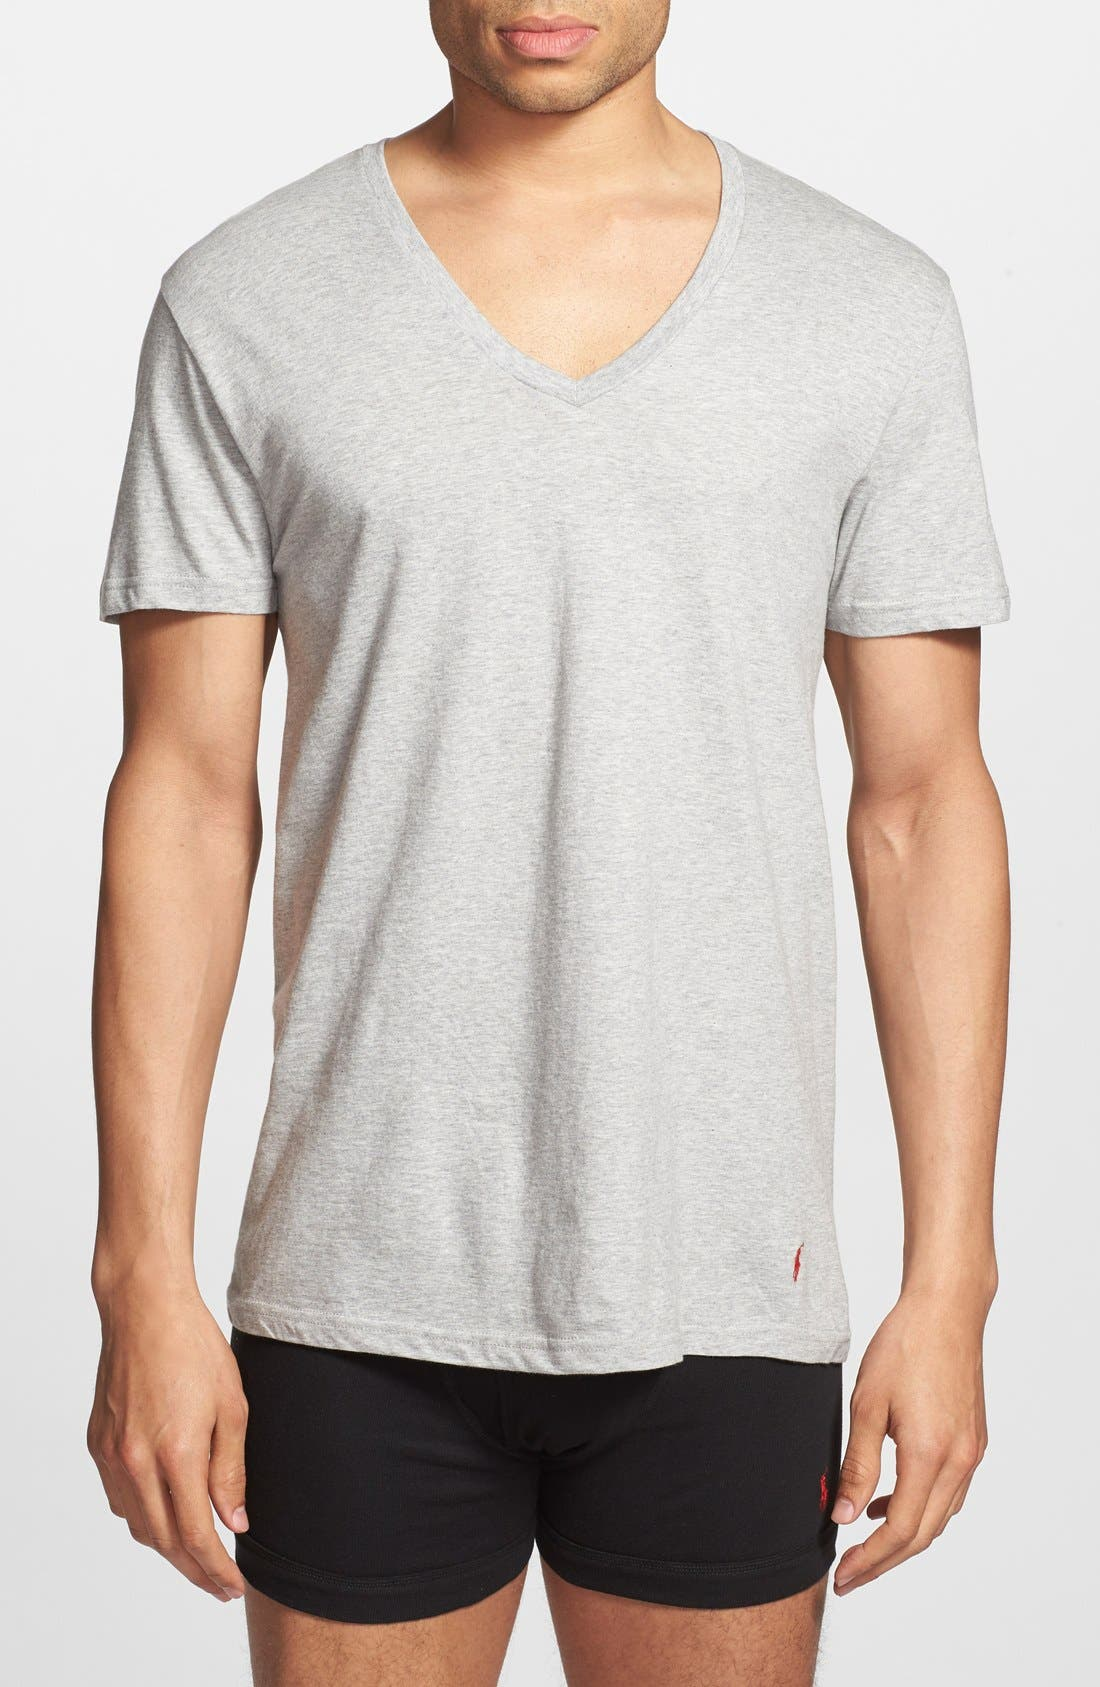 3-Pack V-Neck T-Shirts,                             Main thumbnail 1, color,                             Black/ Grey/ Charcoal